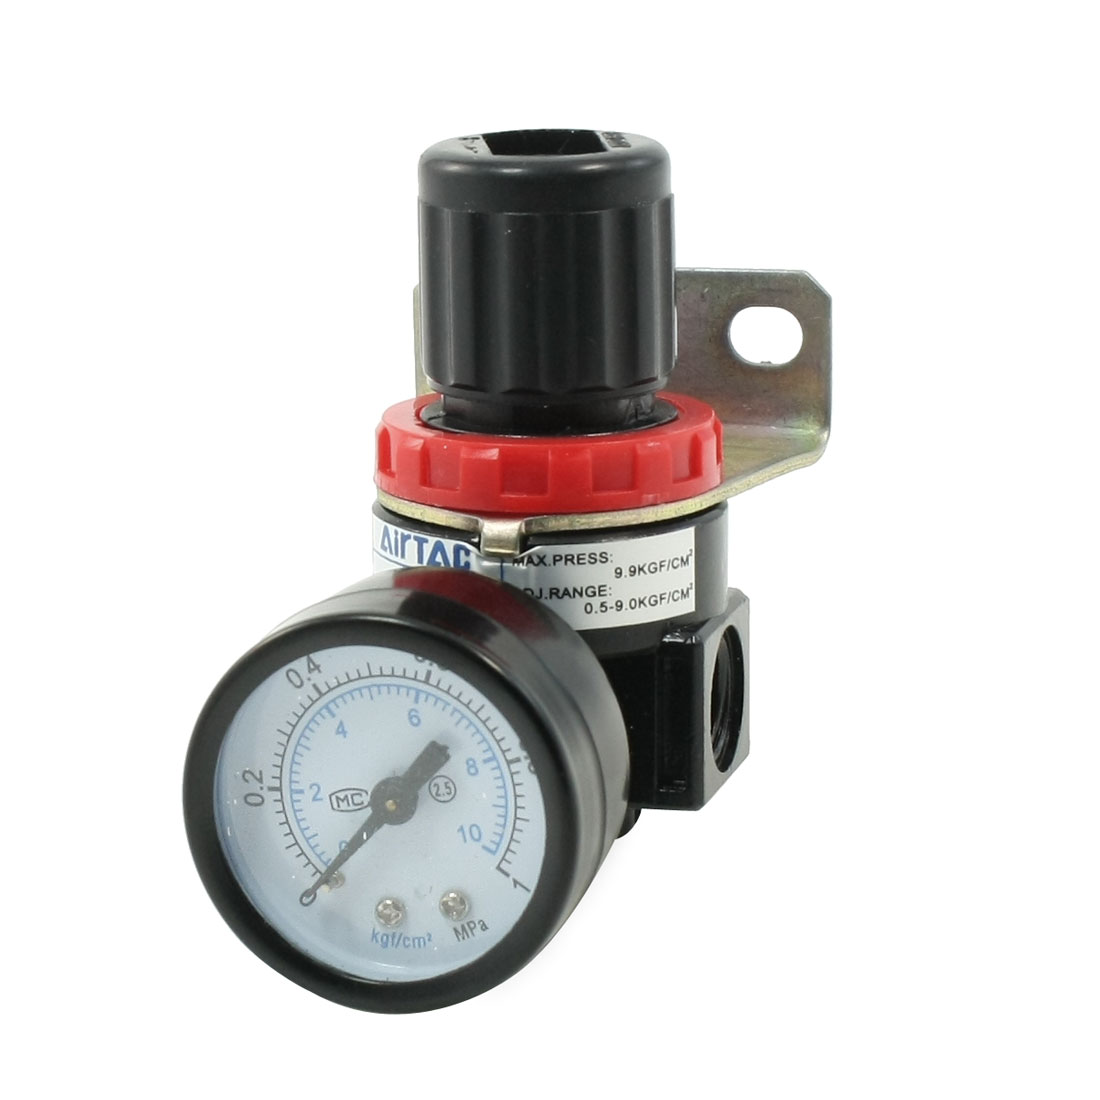 "AR2000 Model 1/4""PT Mounting Adjustable Pressure Pneumatic Regulator"